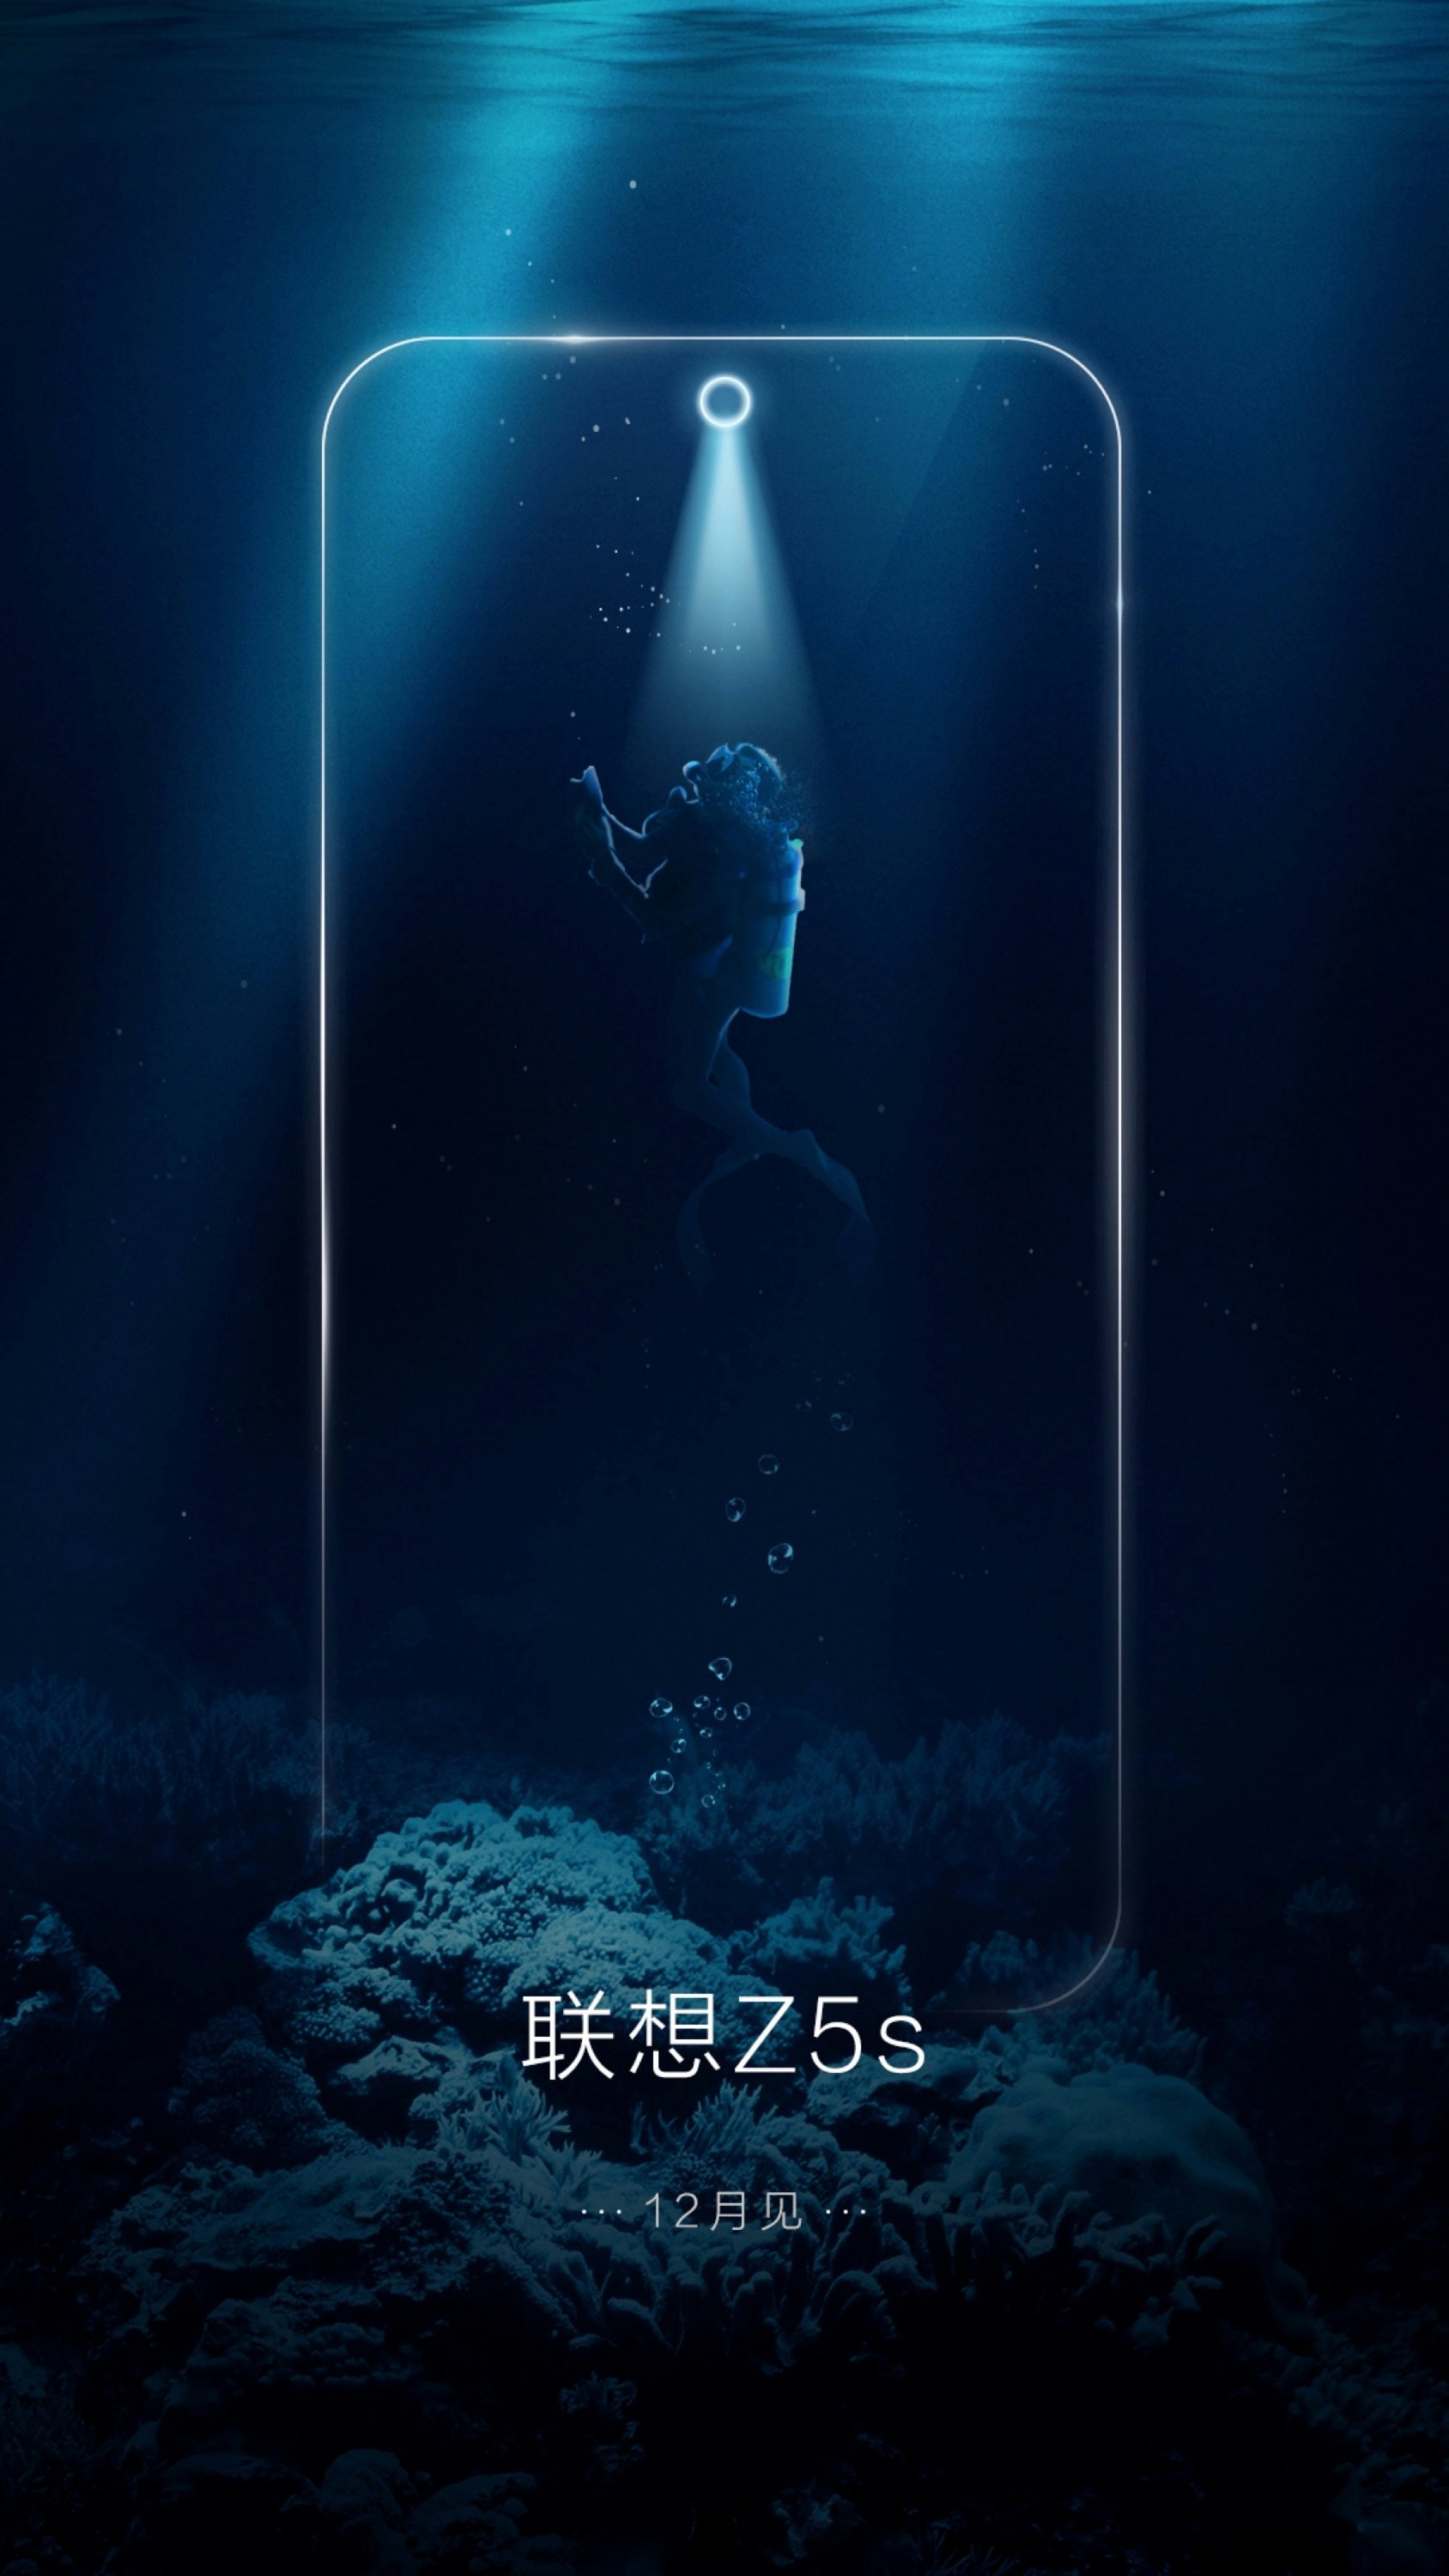 Lenovo Z5s teaser Poster showing design of product